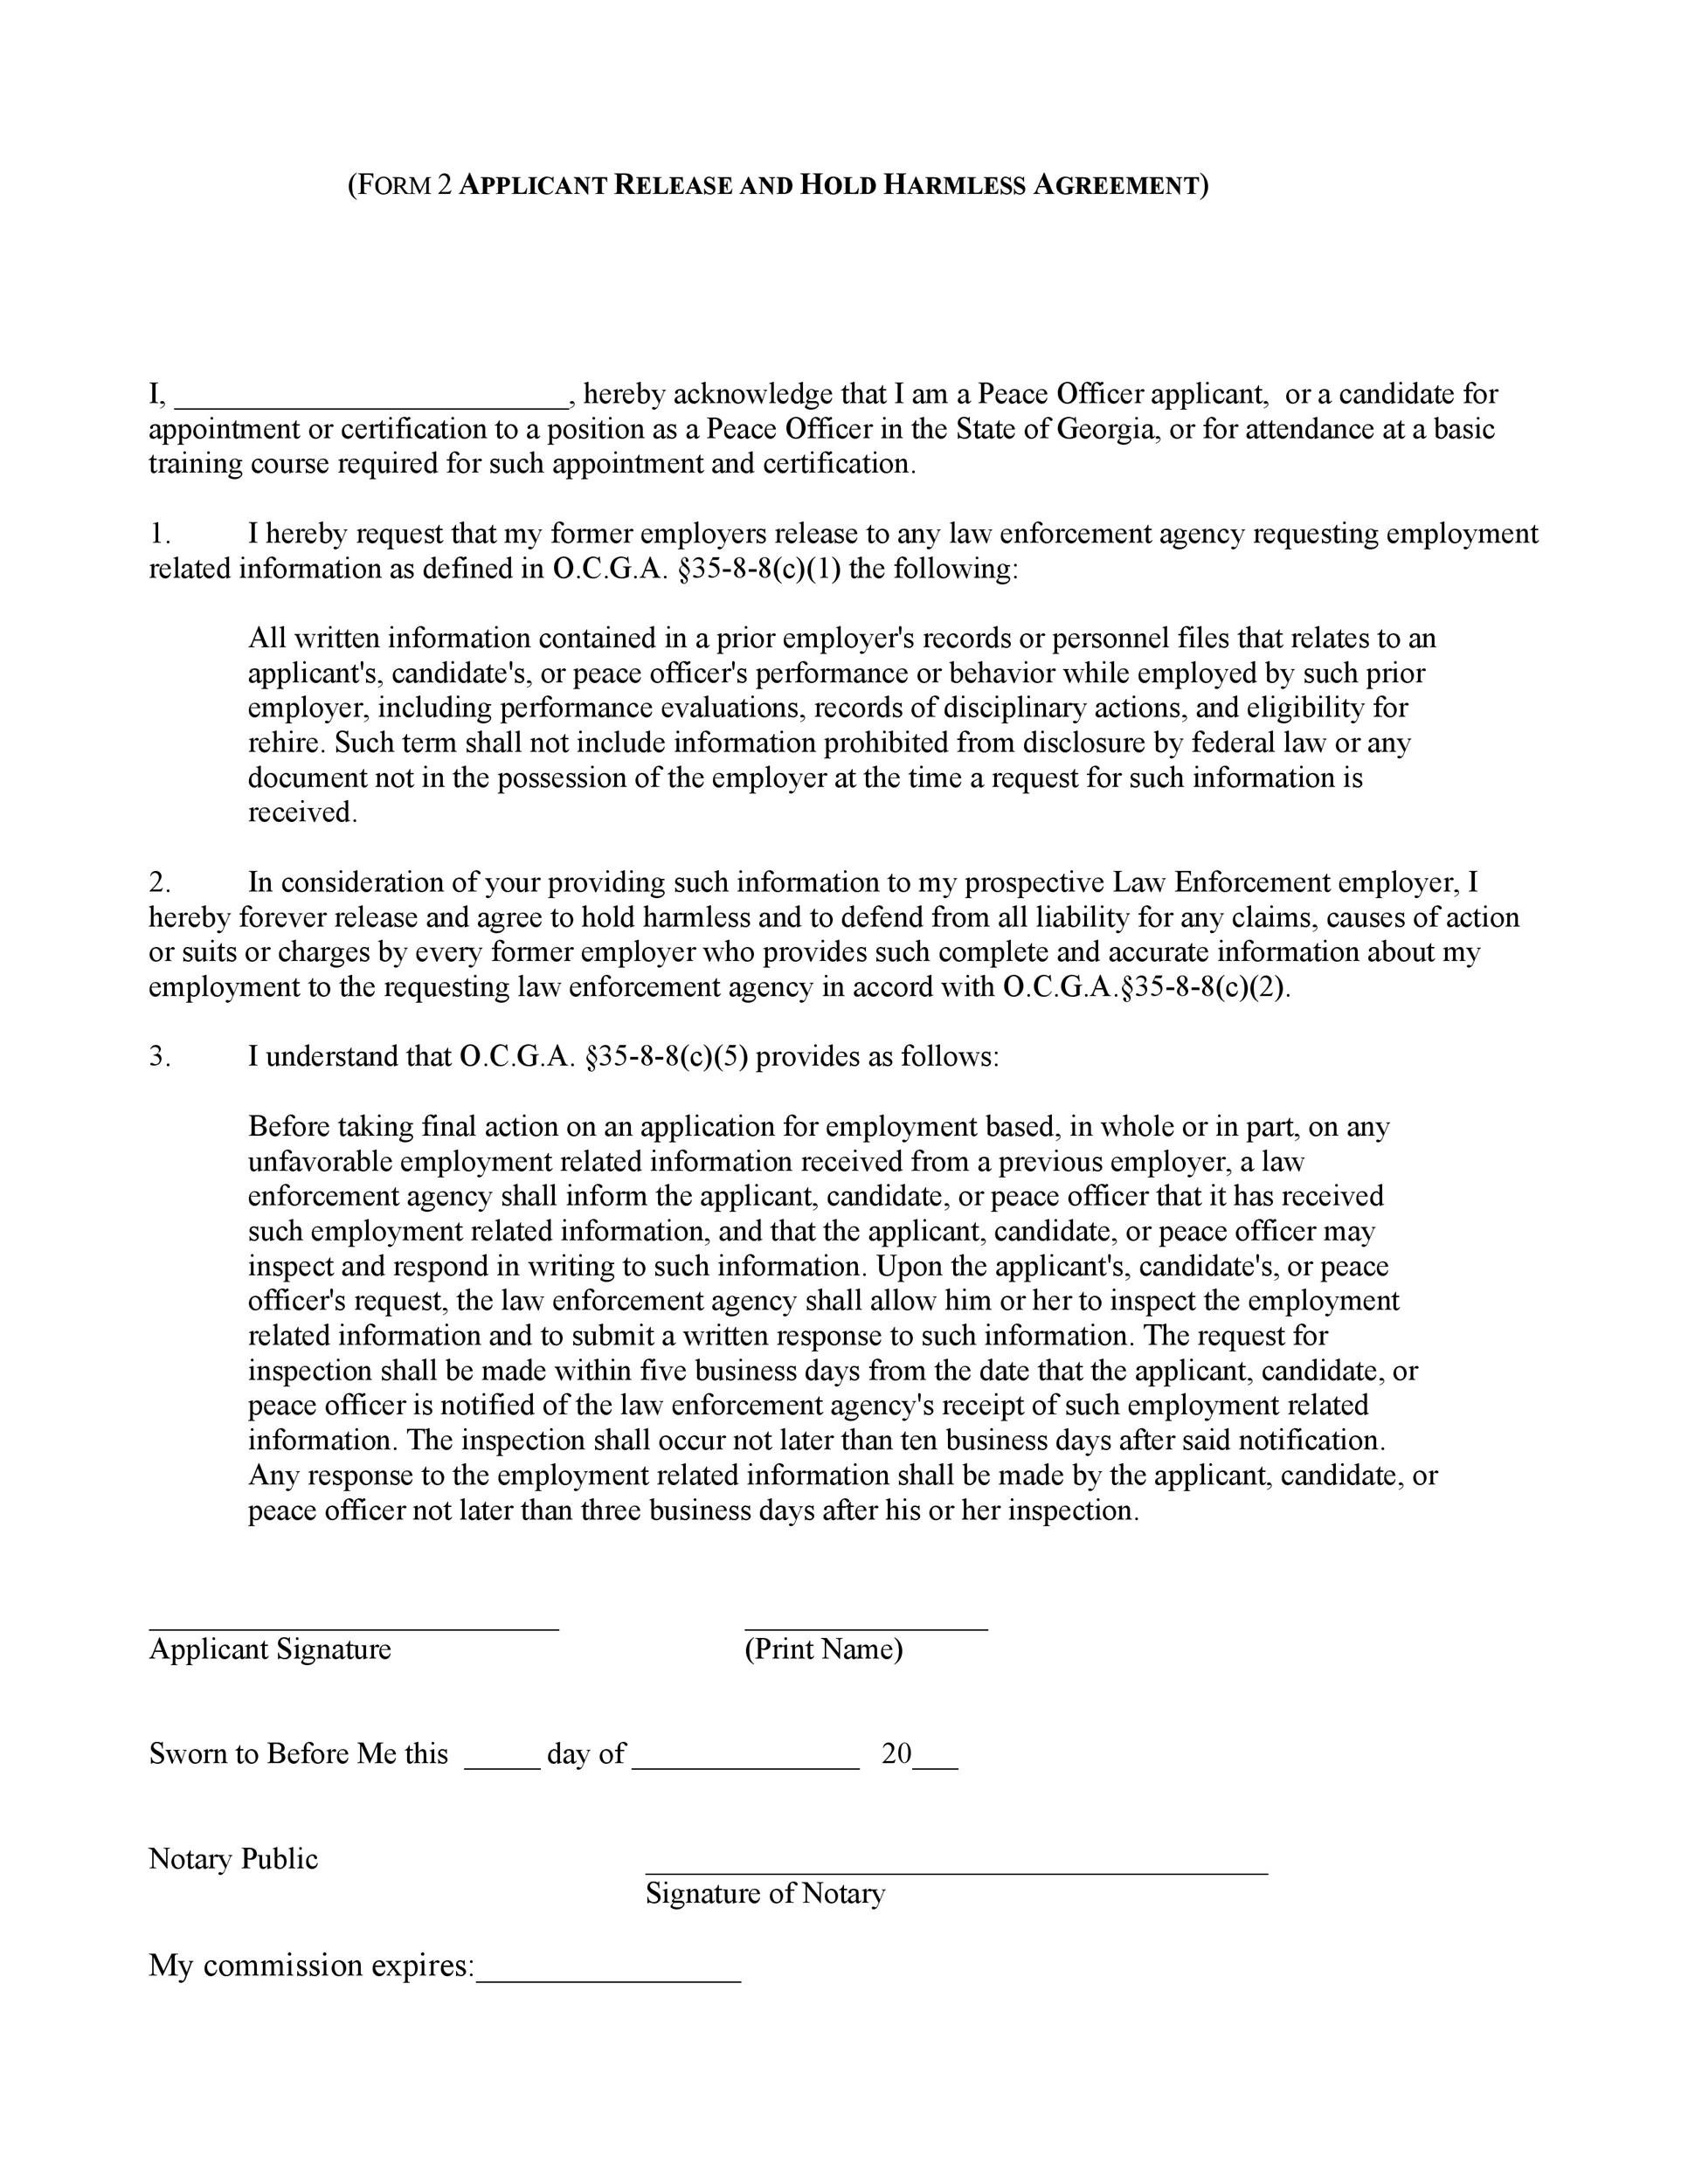 Free Hold Harmless Agreement Template 37